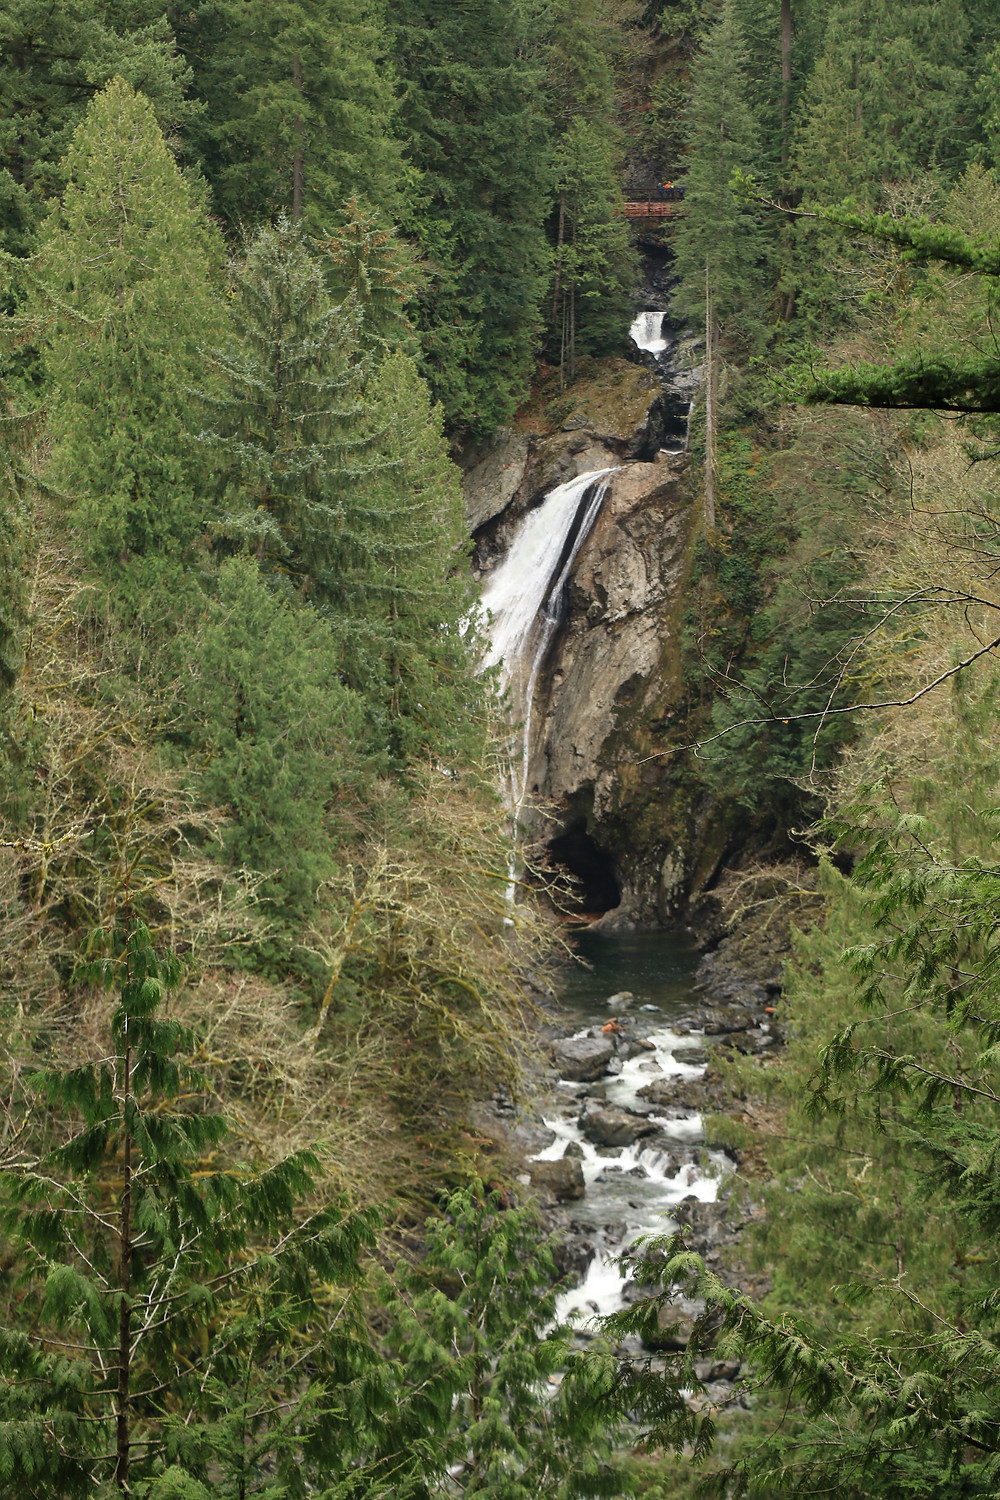 lower and upper twin falls in the distance behind trees